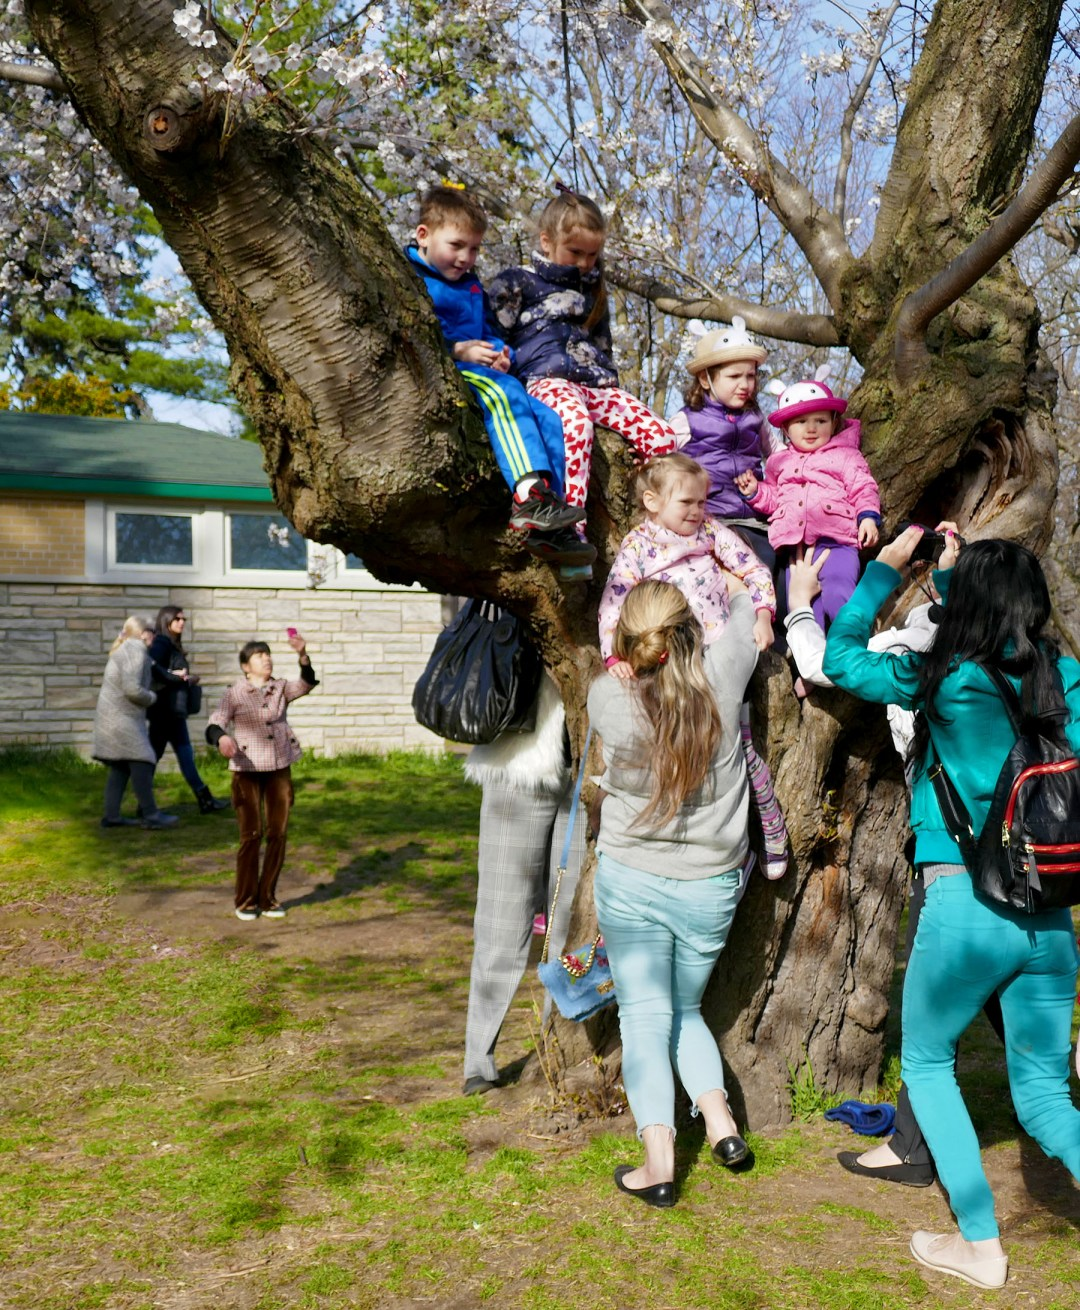 Kids in cherry tree in High Park for boomervoice